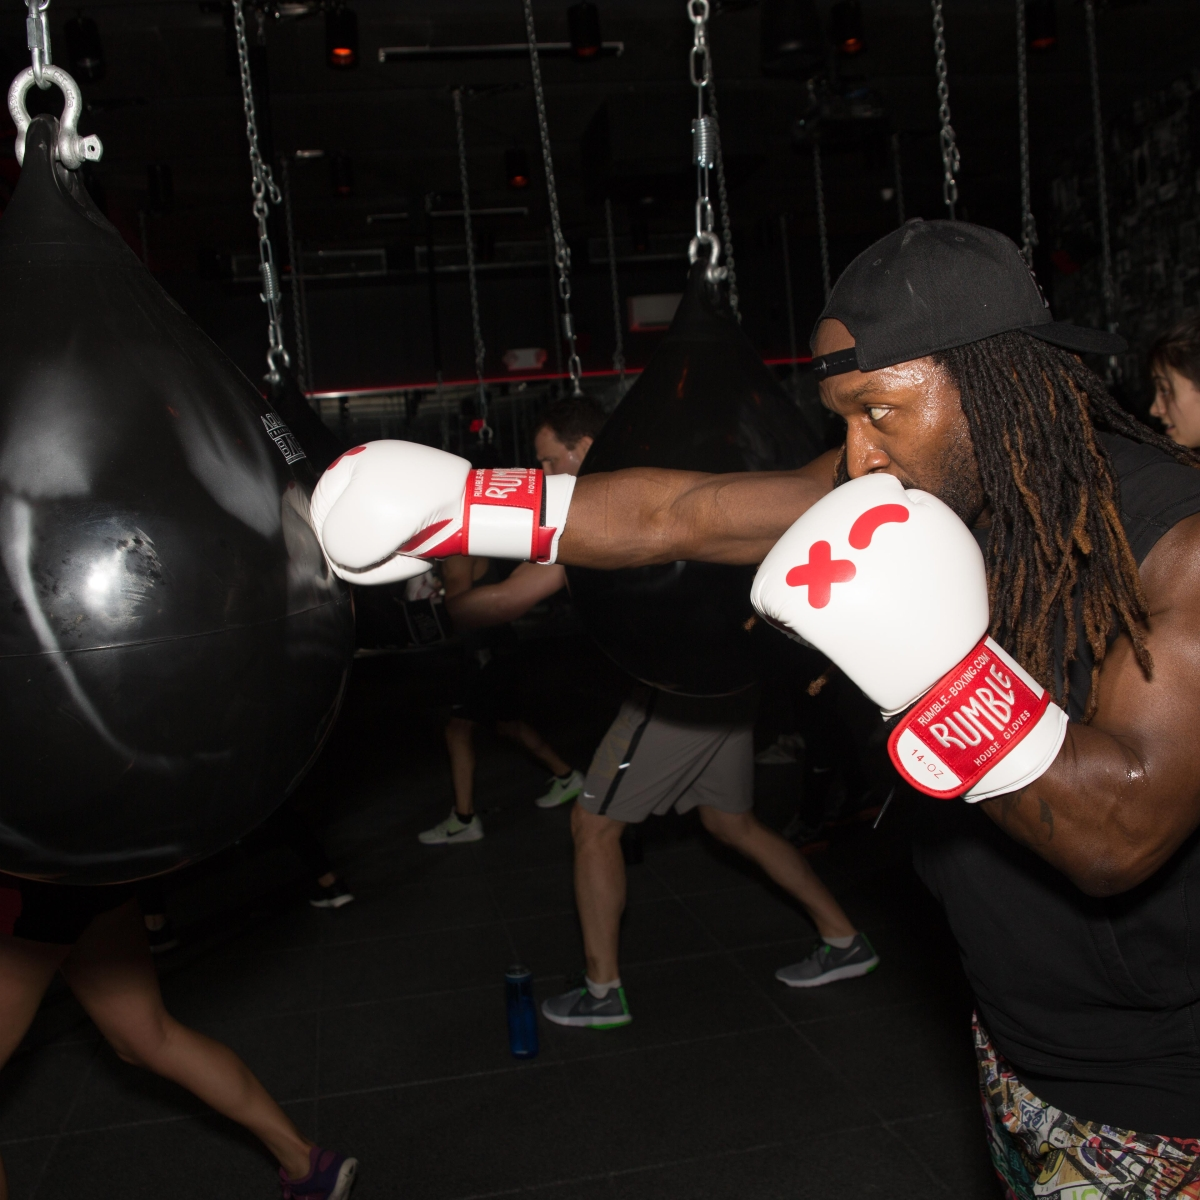 The Rocky-Endorsed Boxing Workout - Men's Journal